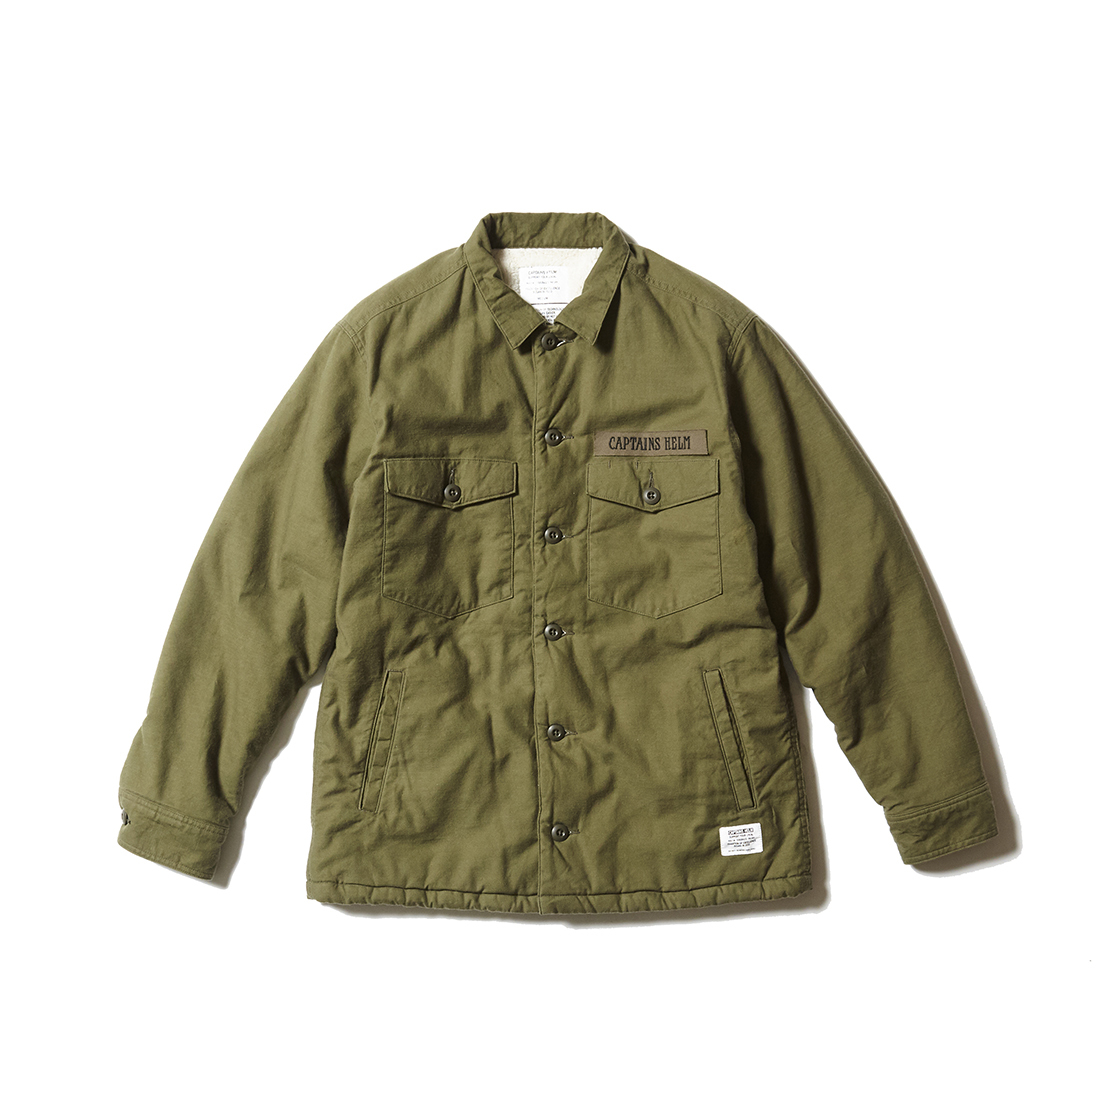 CAPTAINS HELM #Boa Fatigue Shirt JKT